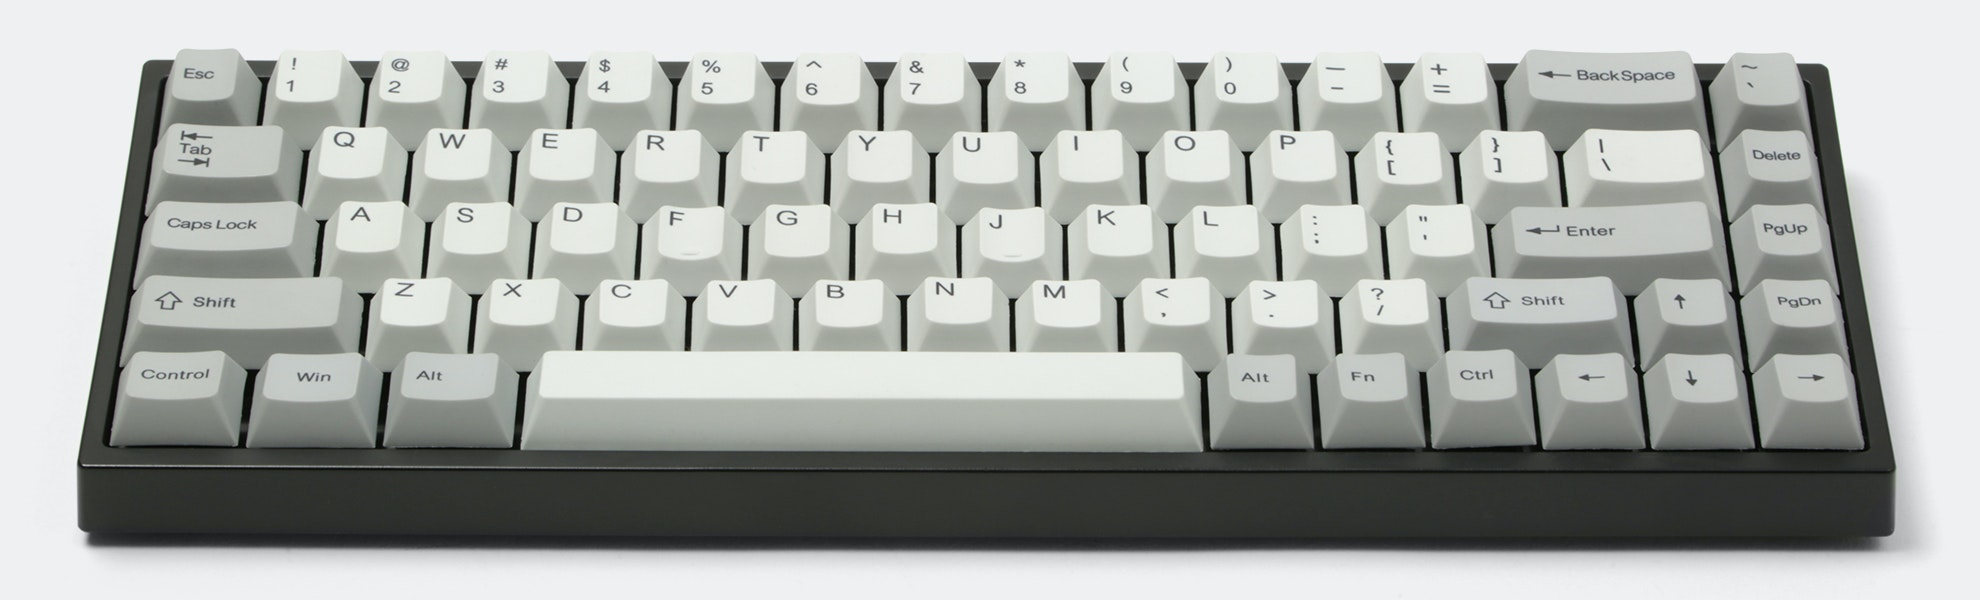 Keywalker 68-Key Bluetooth Mechanical Keyboard